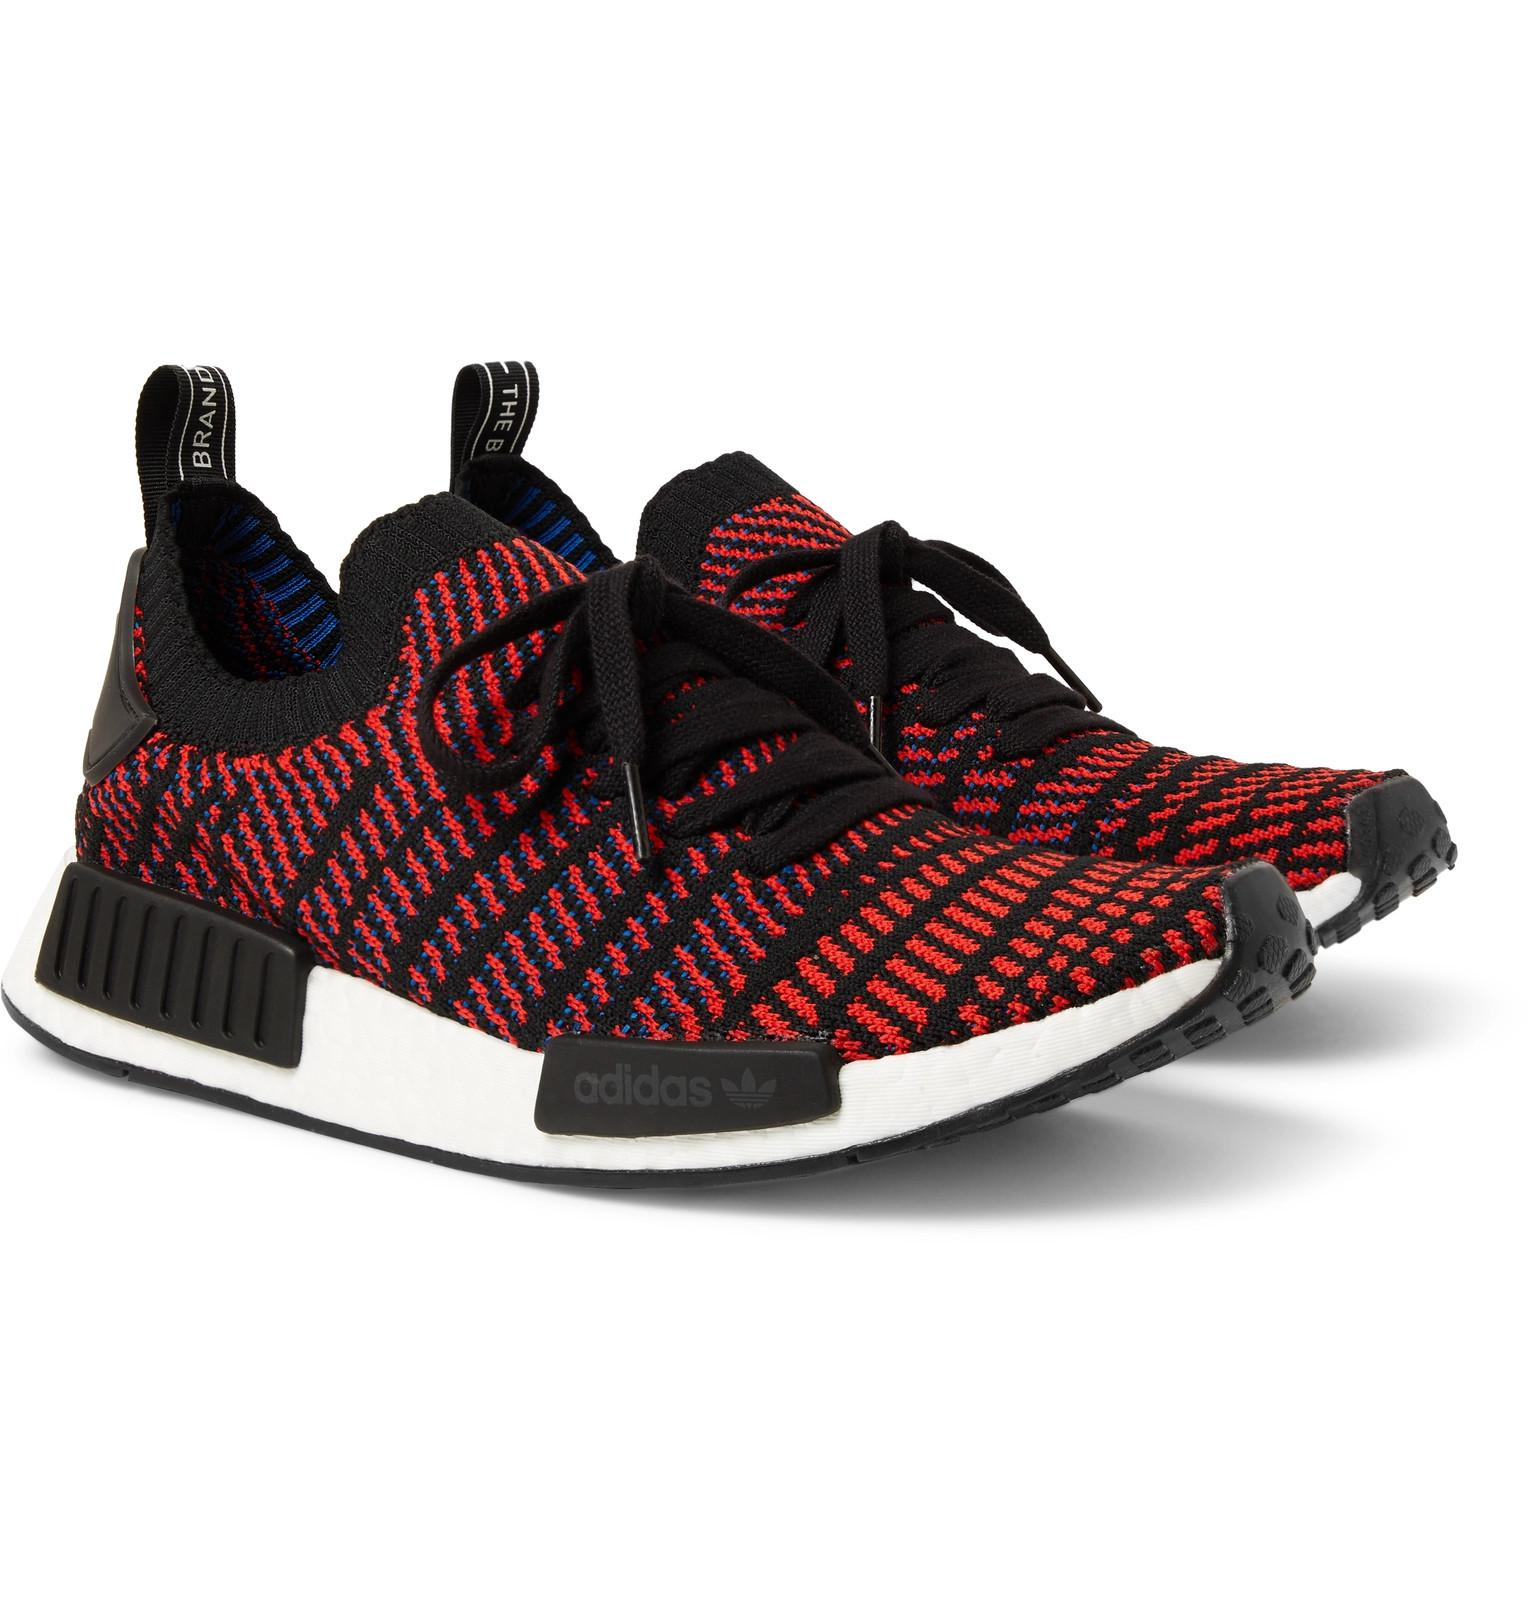 c23a5d7aa ... coupon code for lyst adidas originals nmd r1 stlt primeknit sneakers in  red for men a3f1a